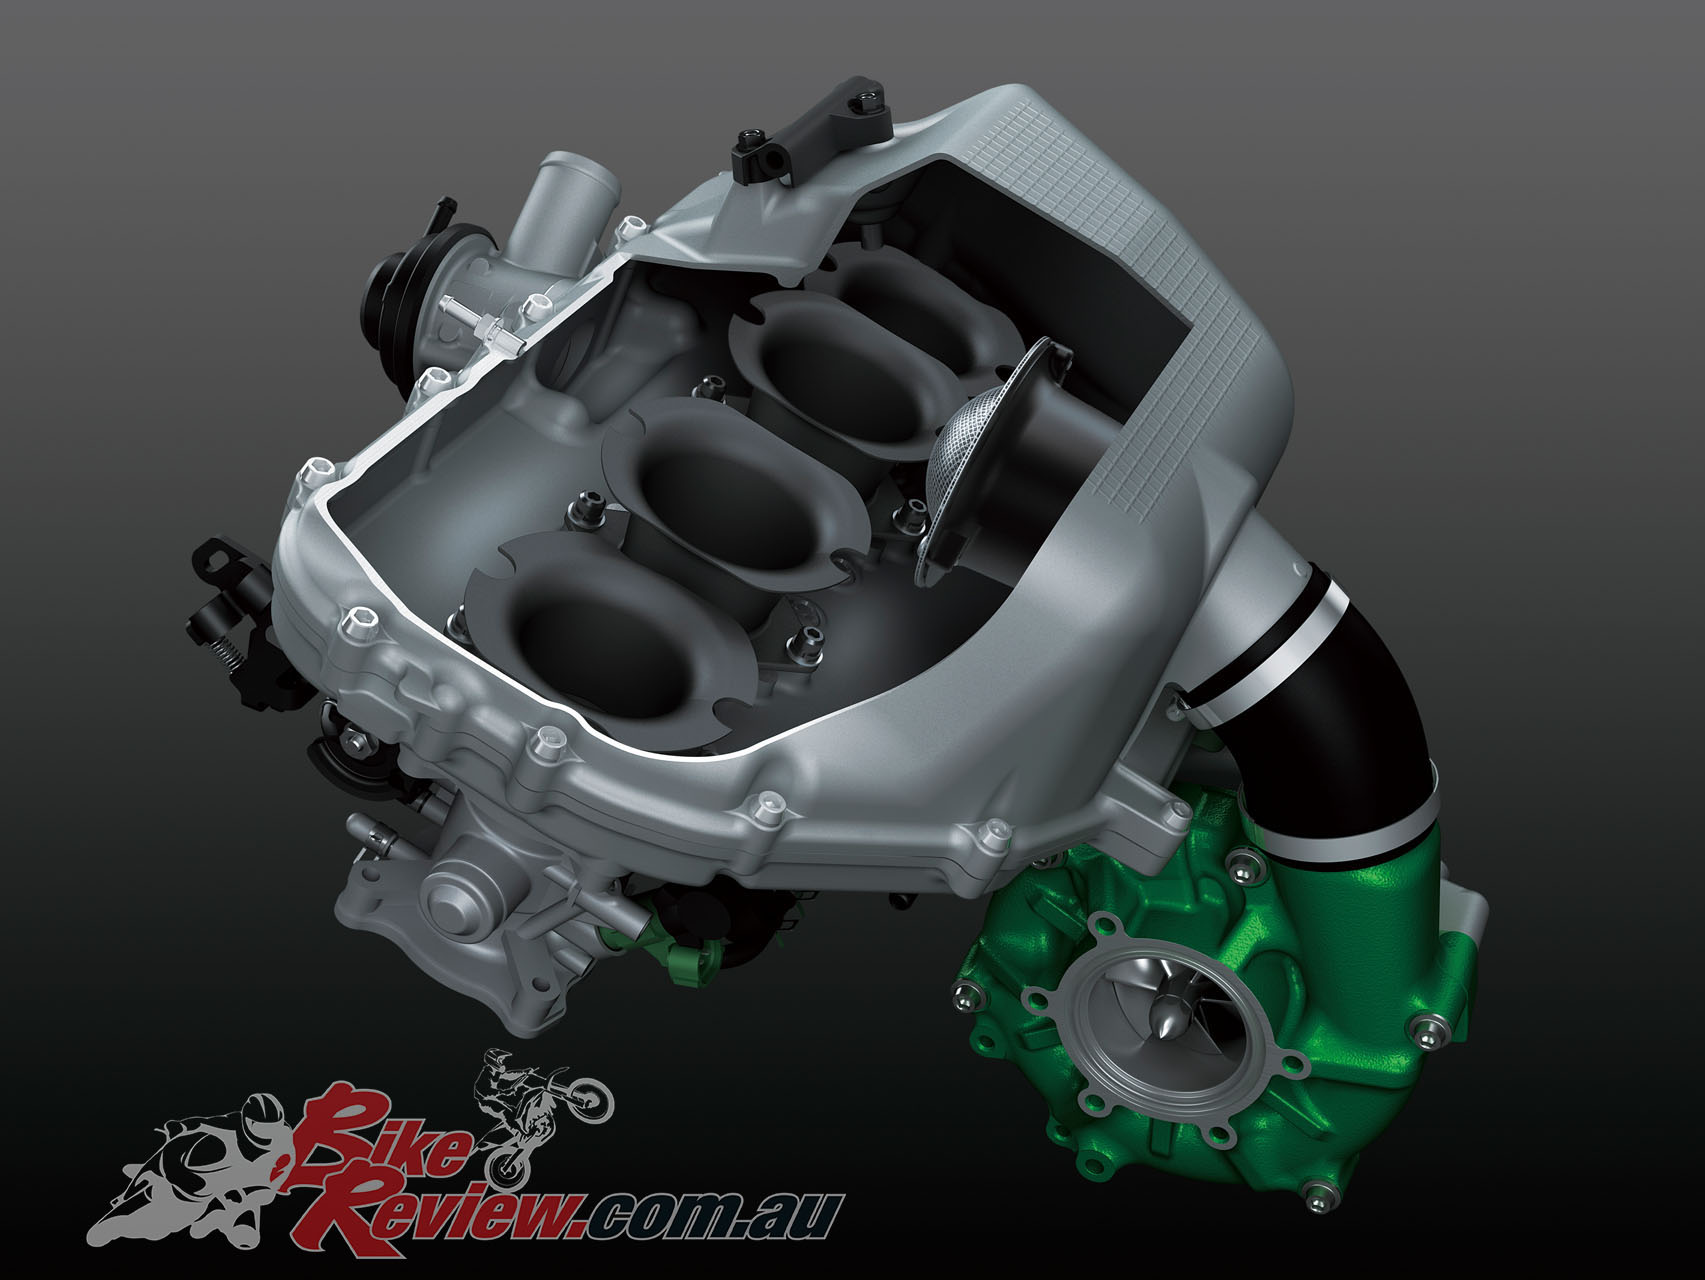 The H2 SX features a smaller intake chamber which is die-cast, and runs cooler and more effeciently.